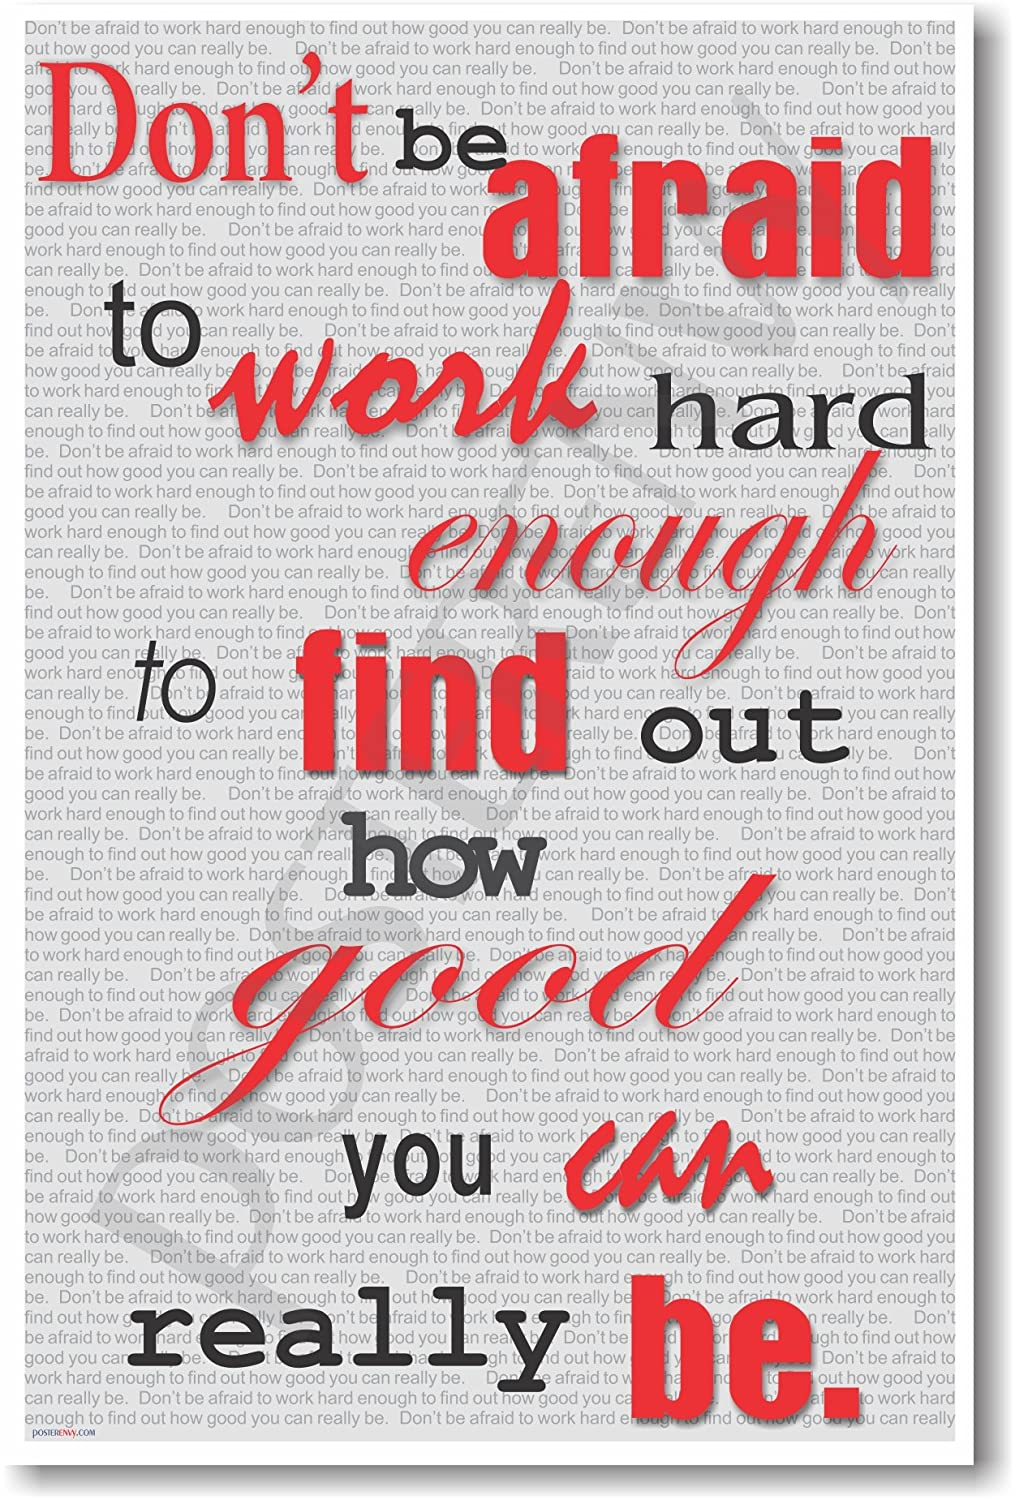 Don't Be Afraid to Work Hard to Find Out How Good You Can Really Be